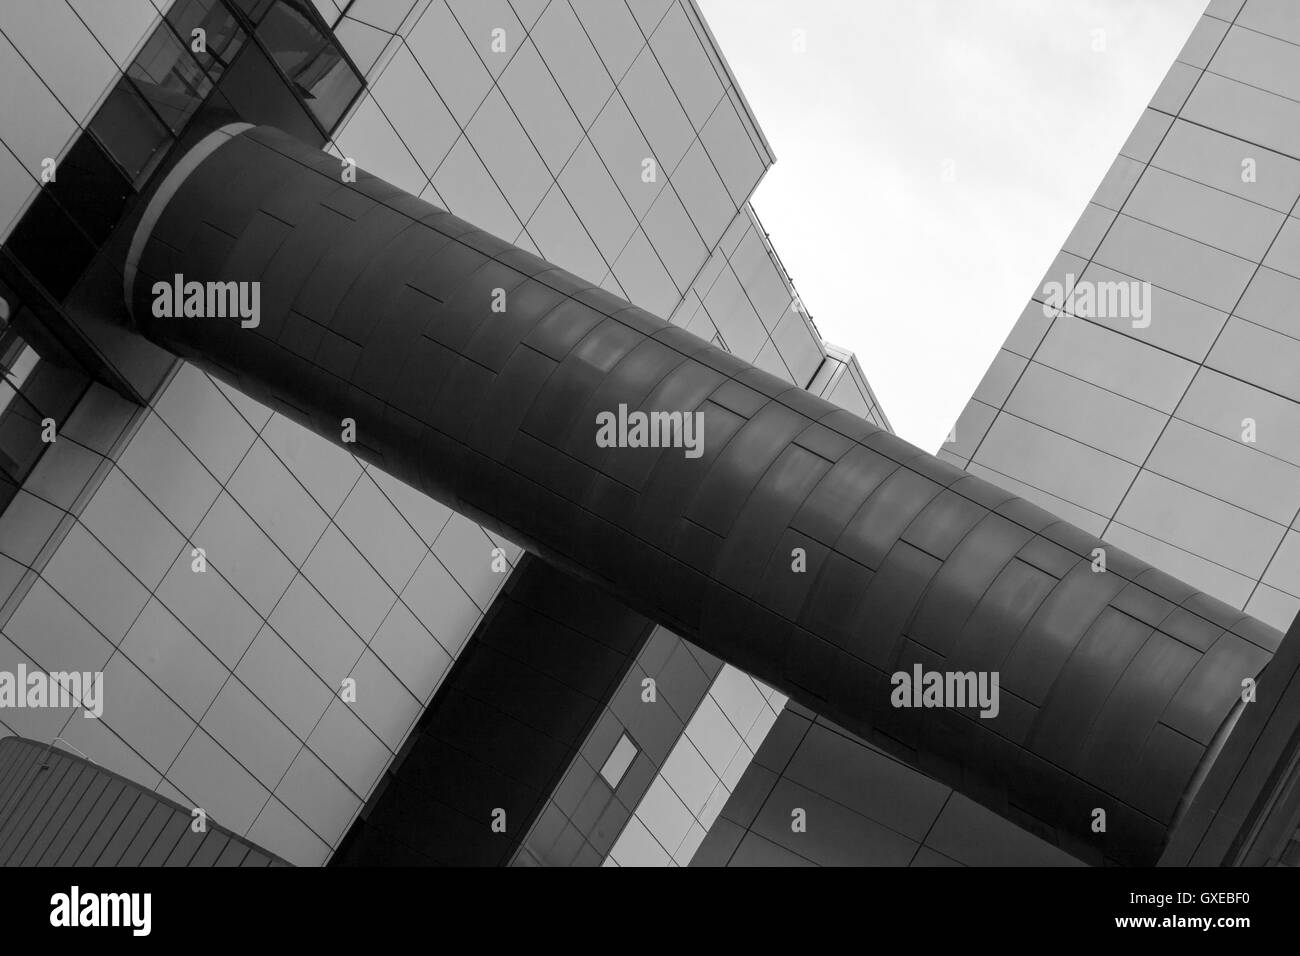 Black and White Abstract Photograph of a Modern Building - Stock Image